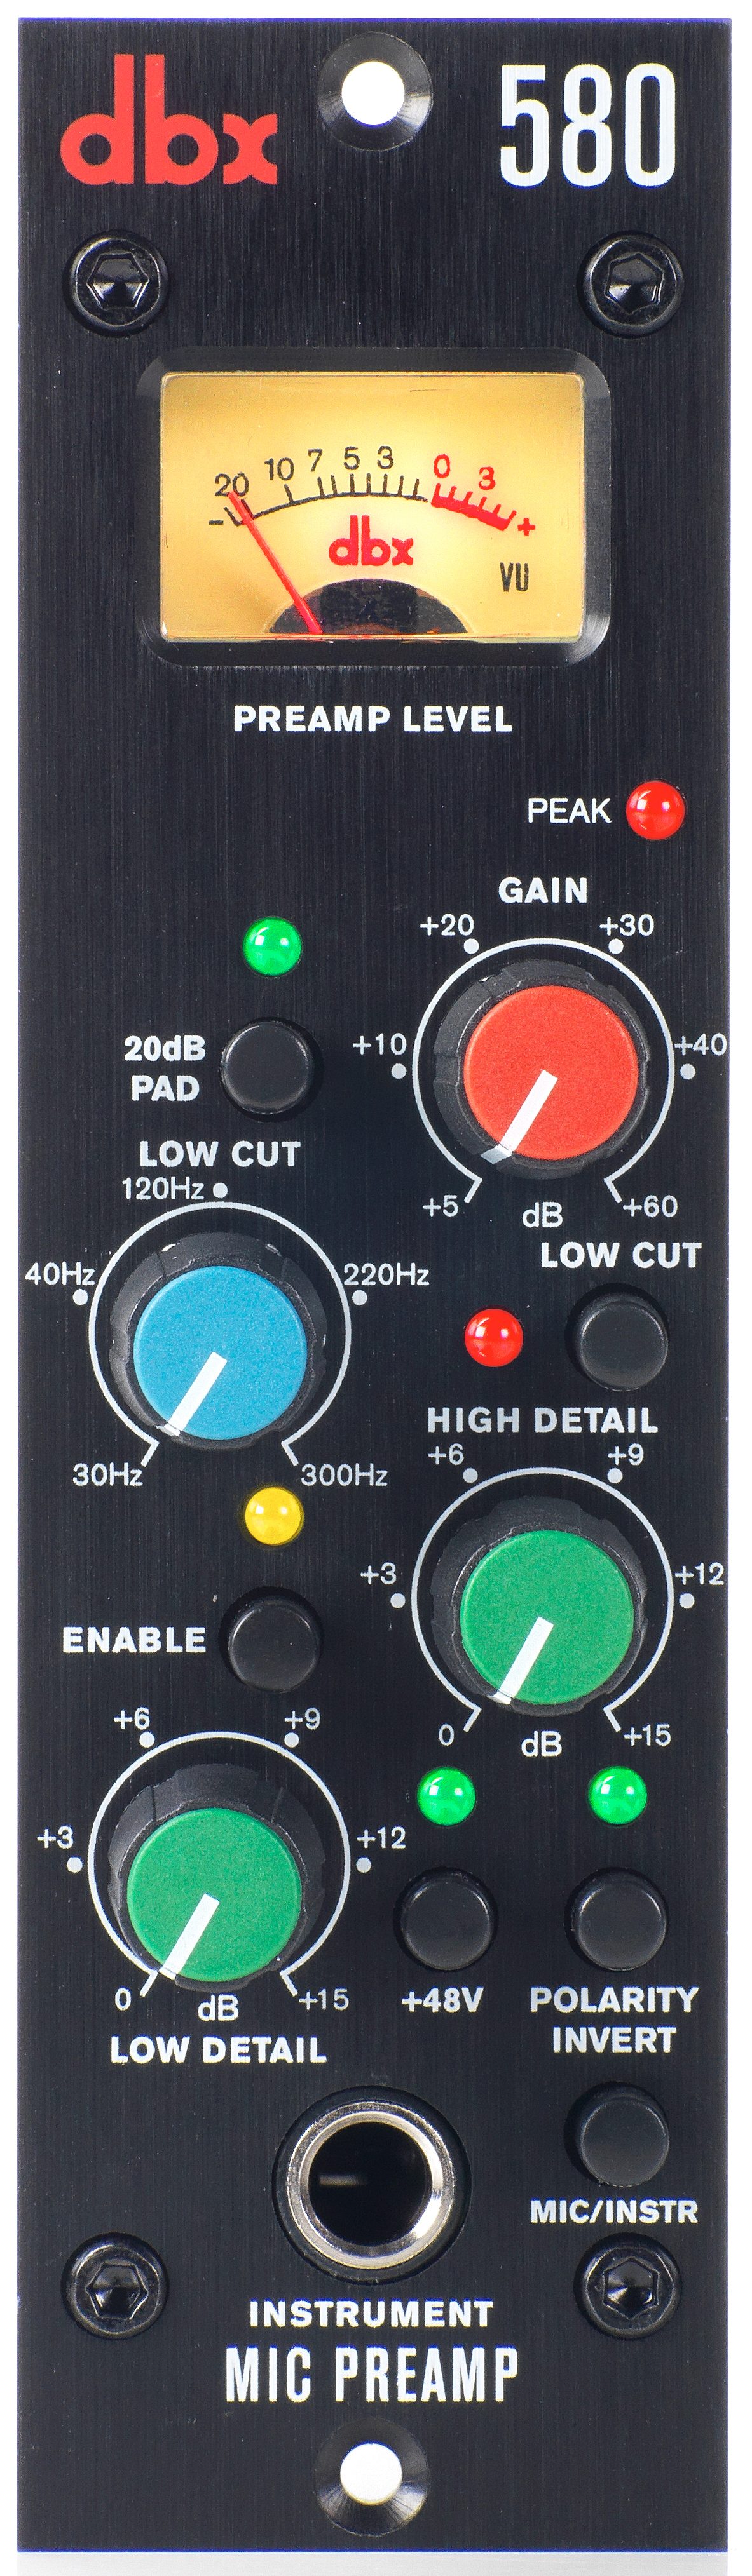 580 Dbx Professional Audio Microphone Preamplifier Based Tlc251 Dbx580 Front Tiny Square